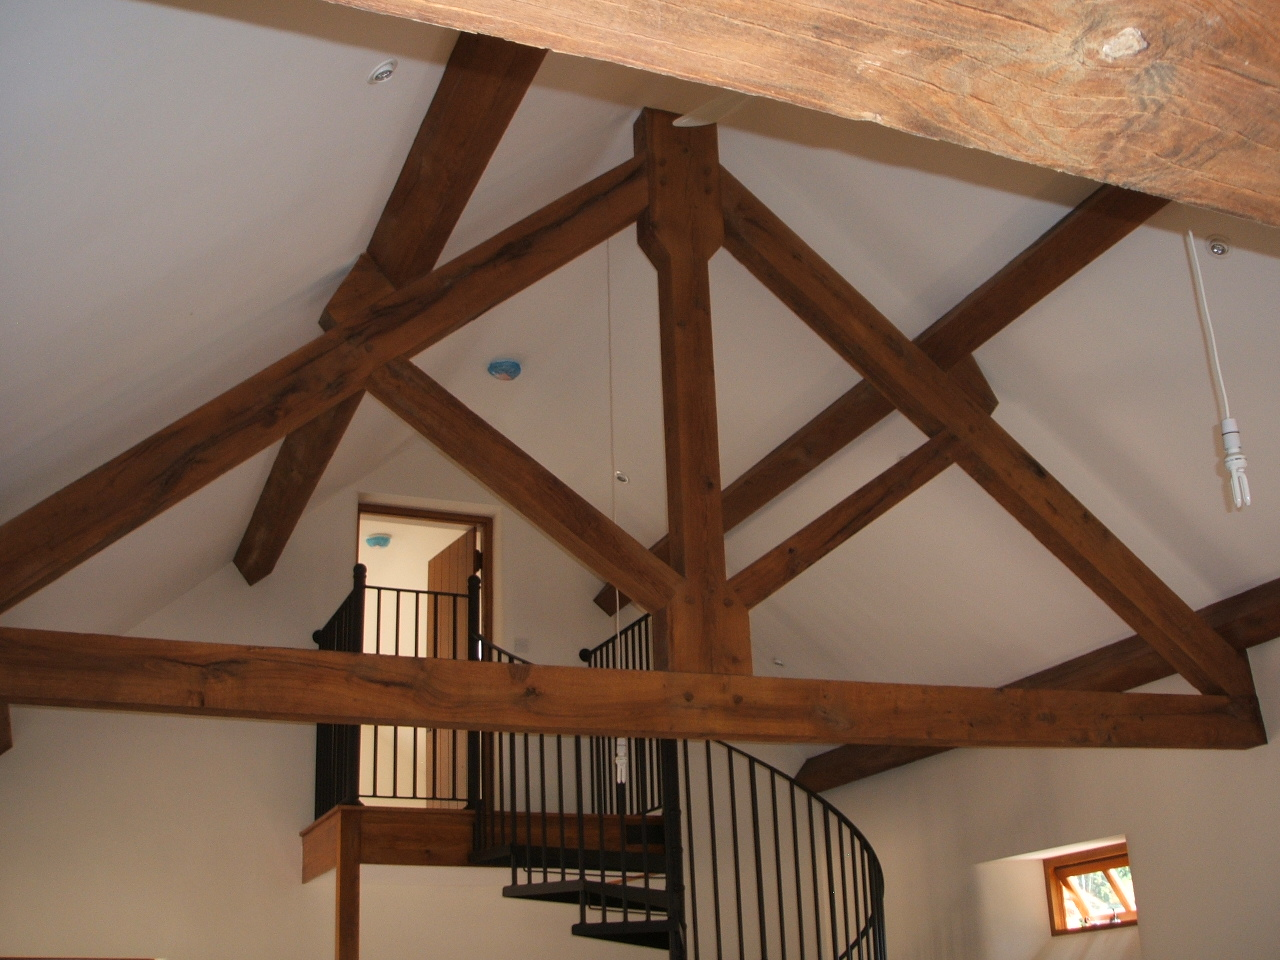 oak frames and trusses